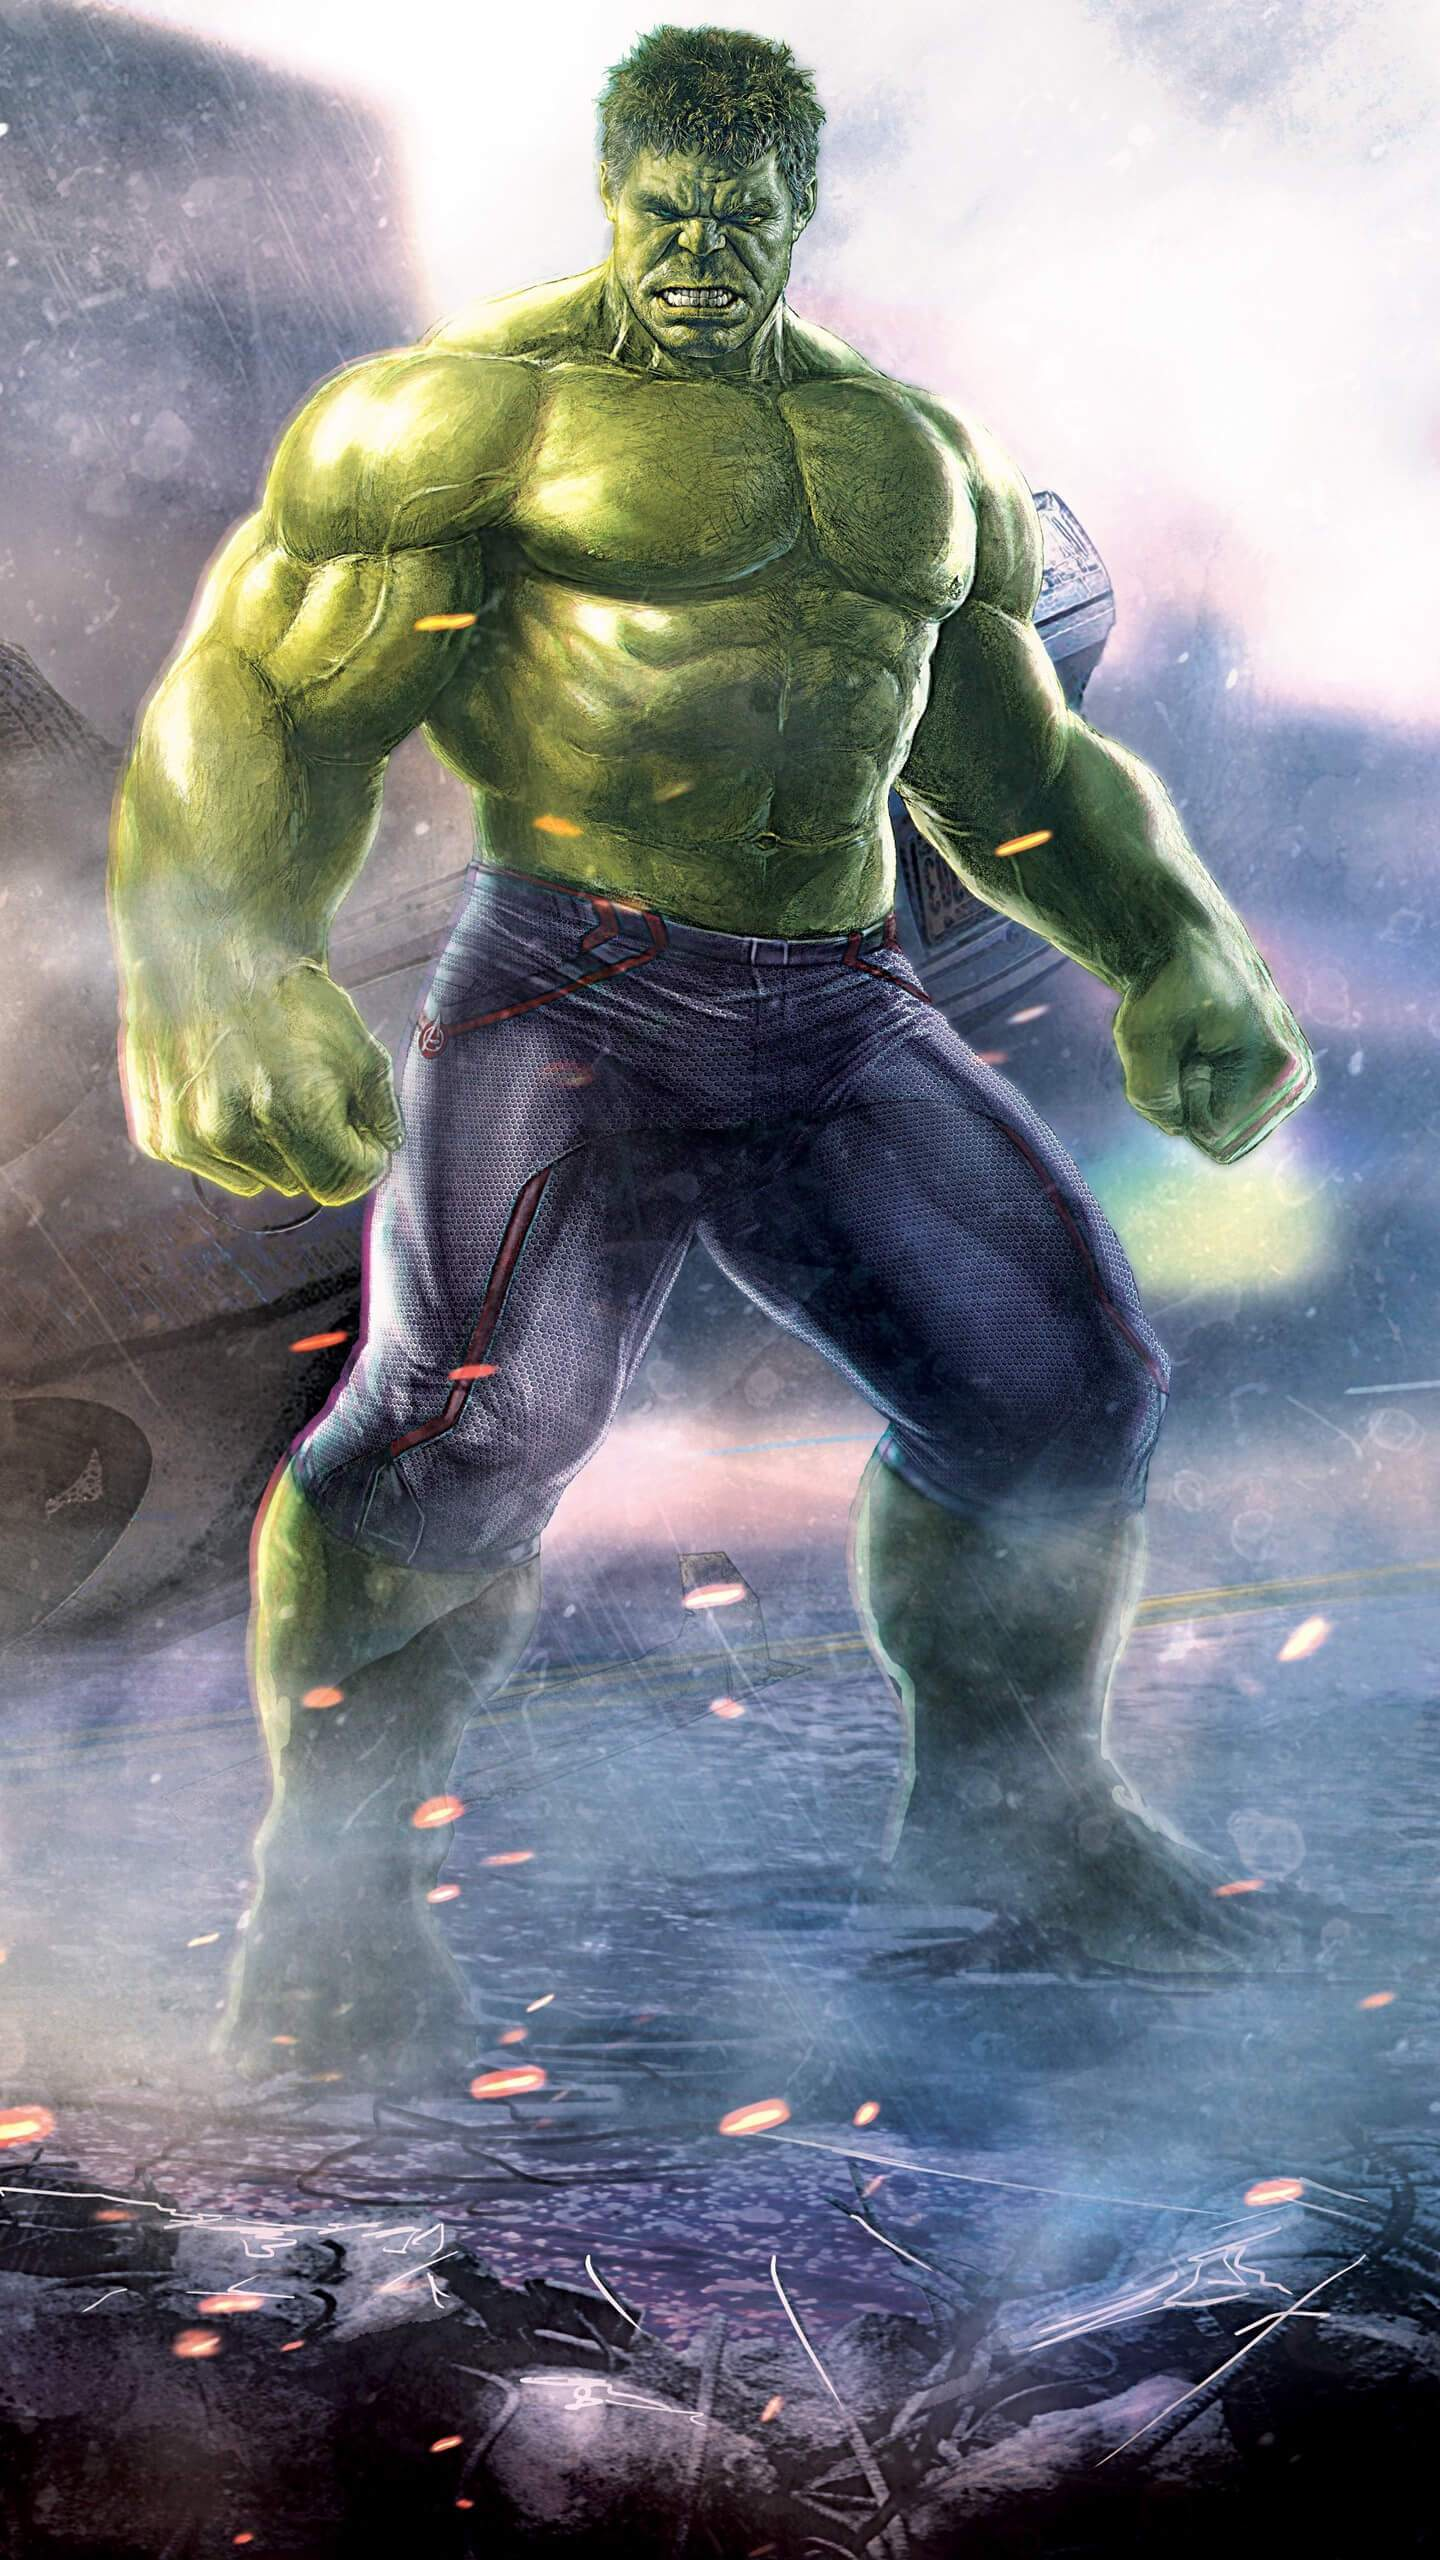 Cute Cartoon Wallpaper Iphone The Hulk Strongest Avenger Iphone Wallpaper Iphone